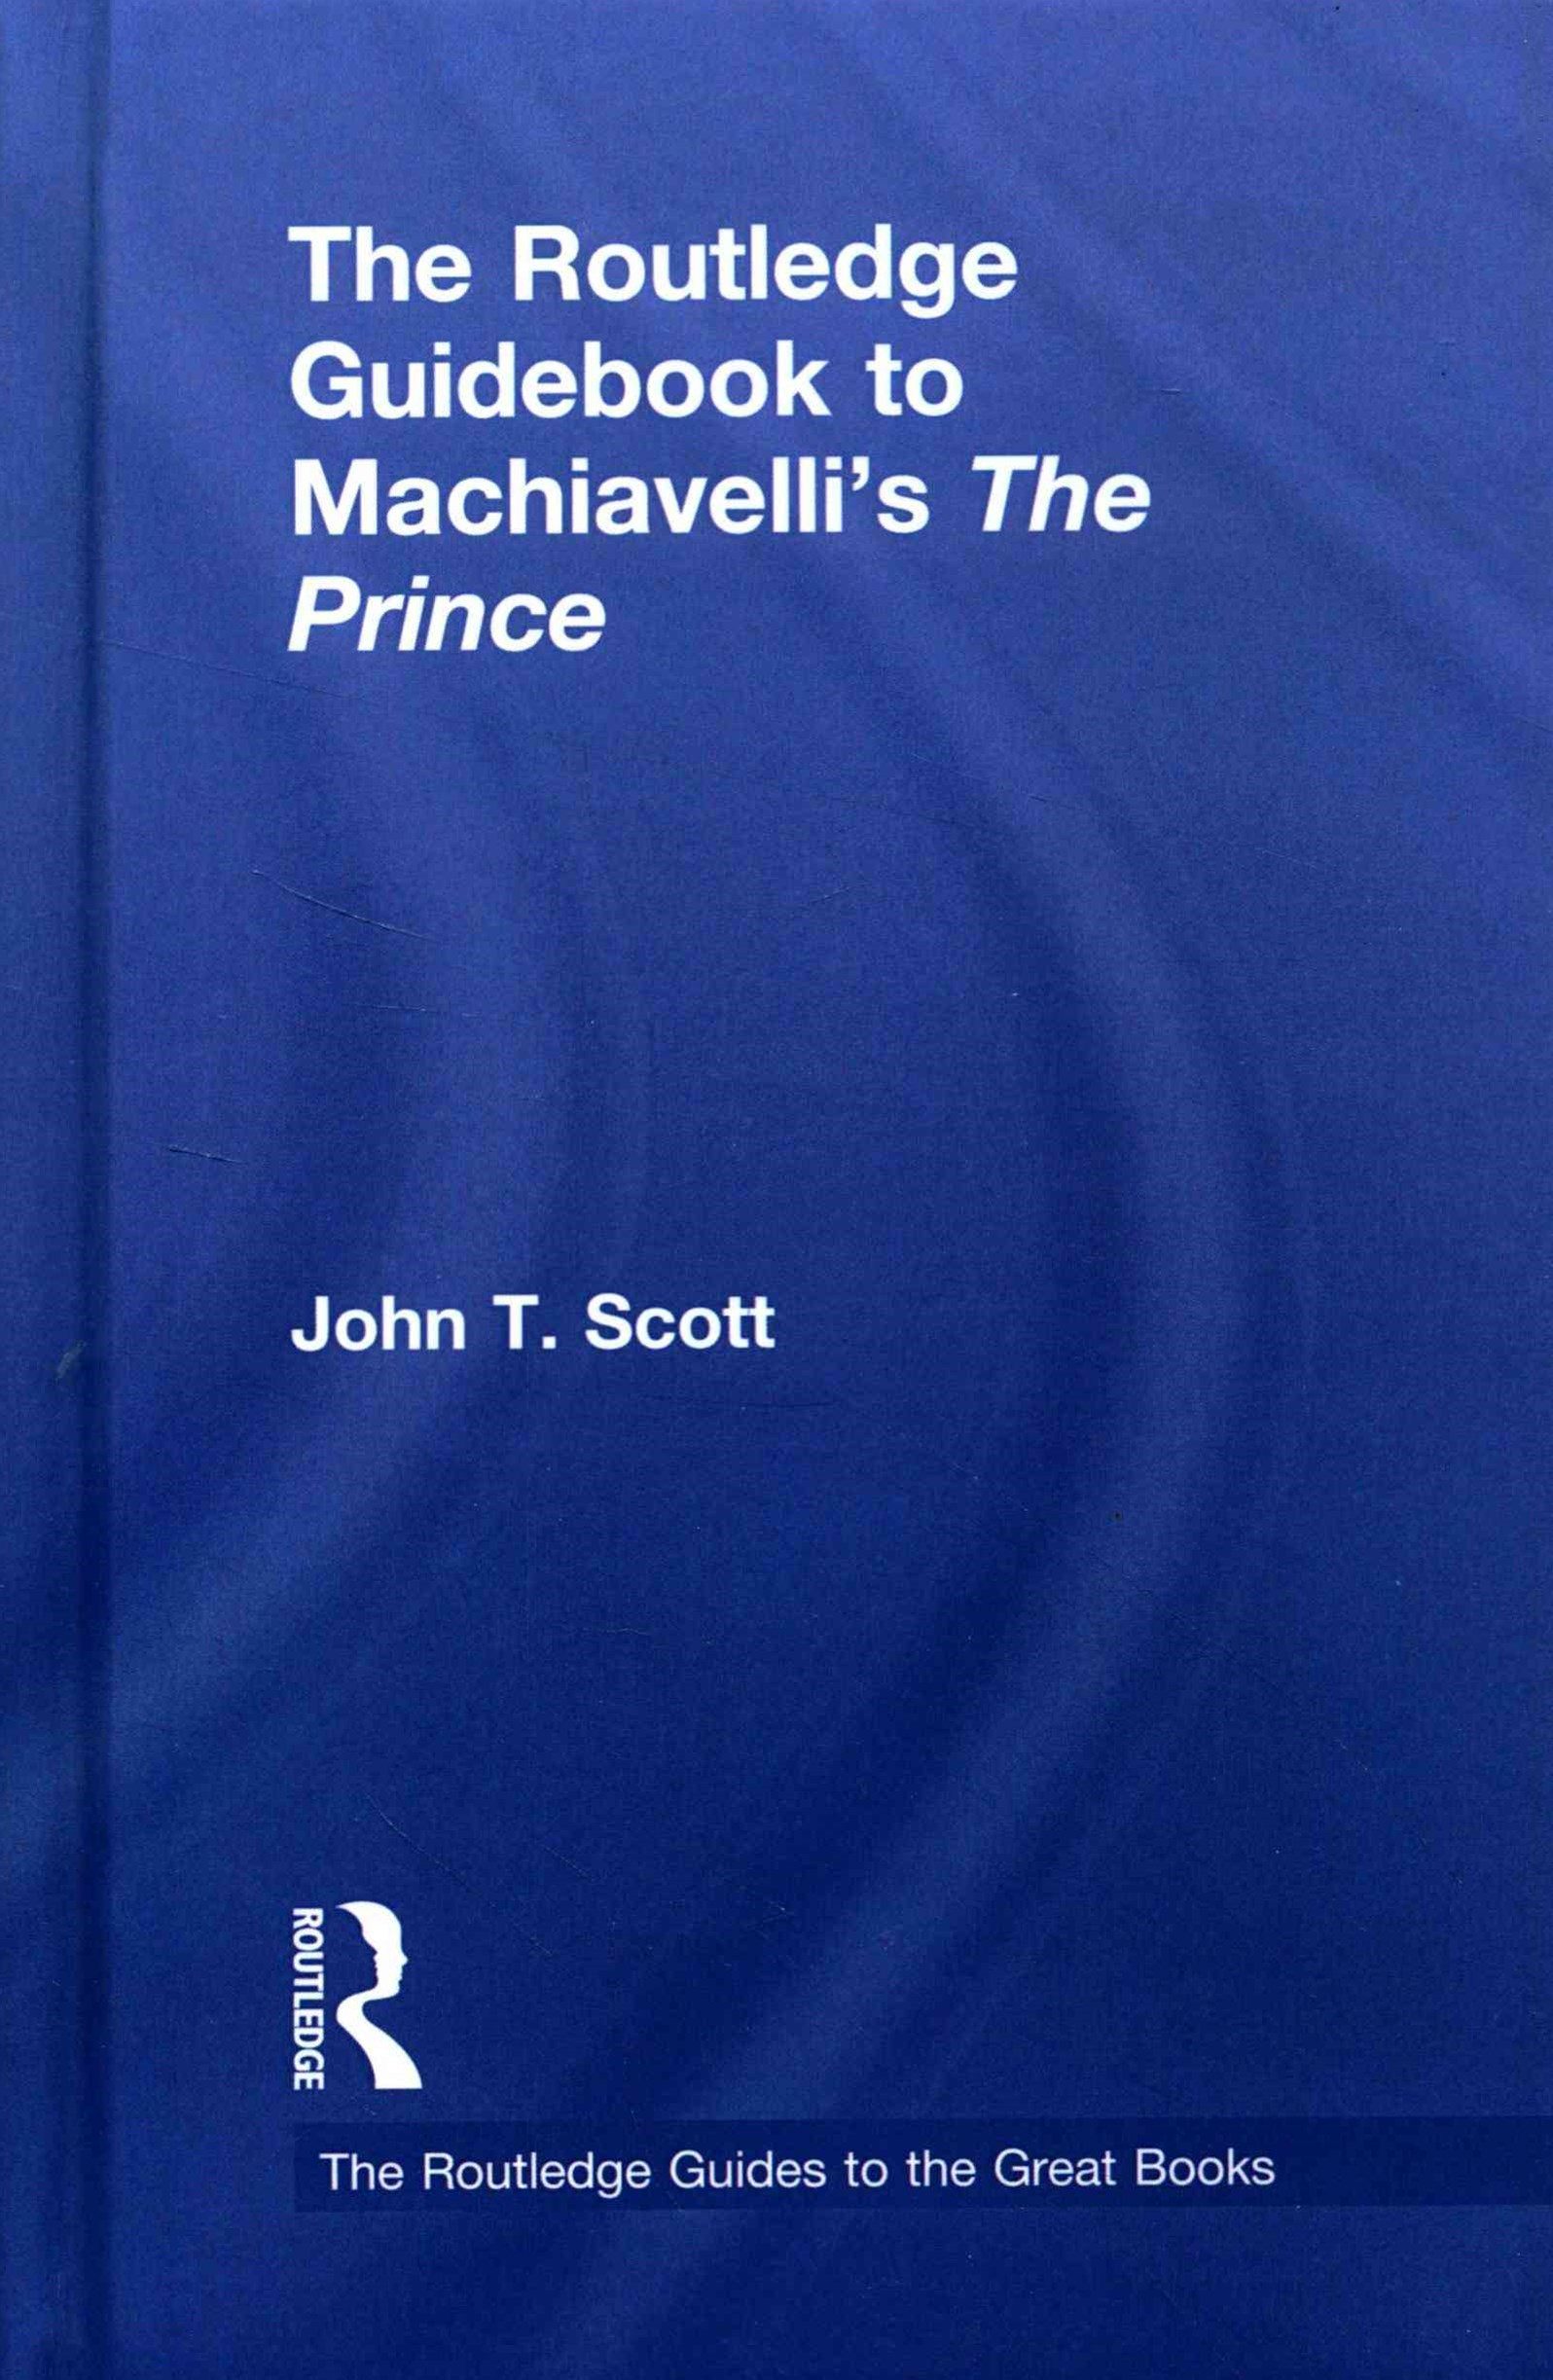 Routledge Guidebook to Machiavelli's the Prince